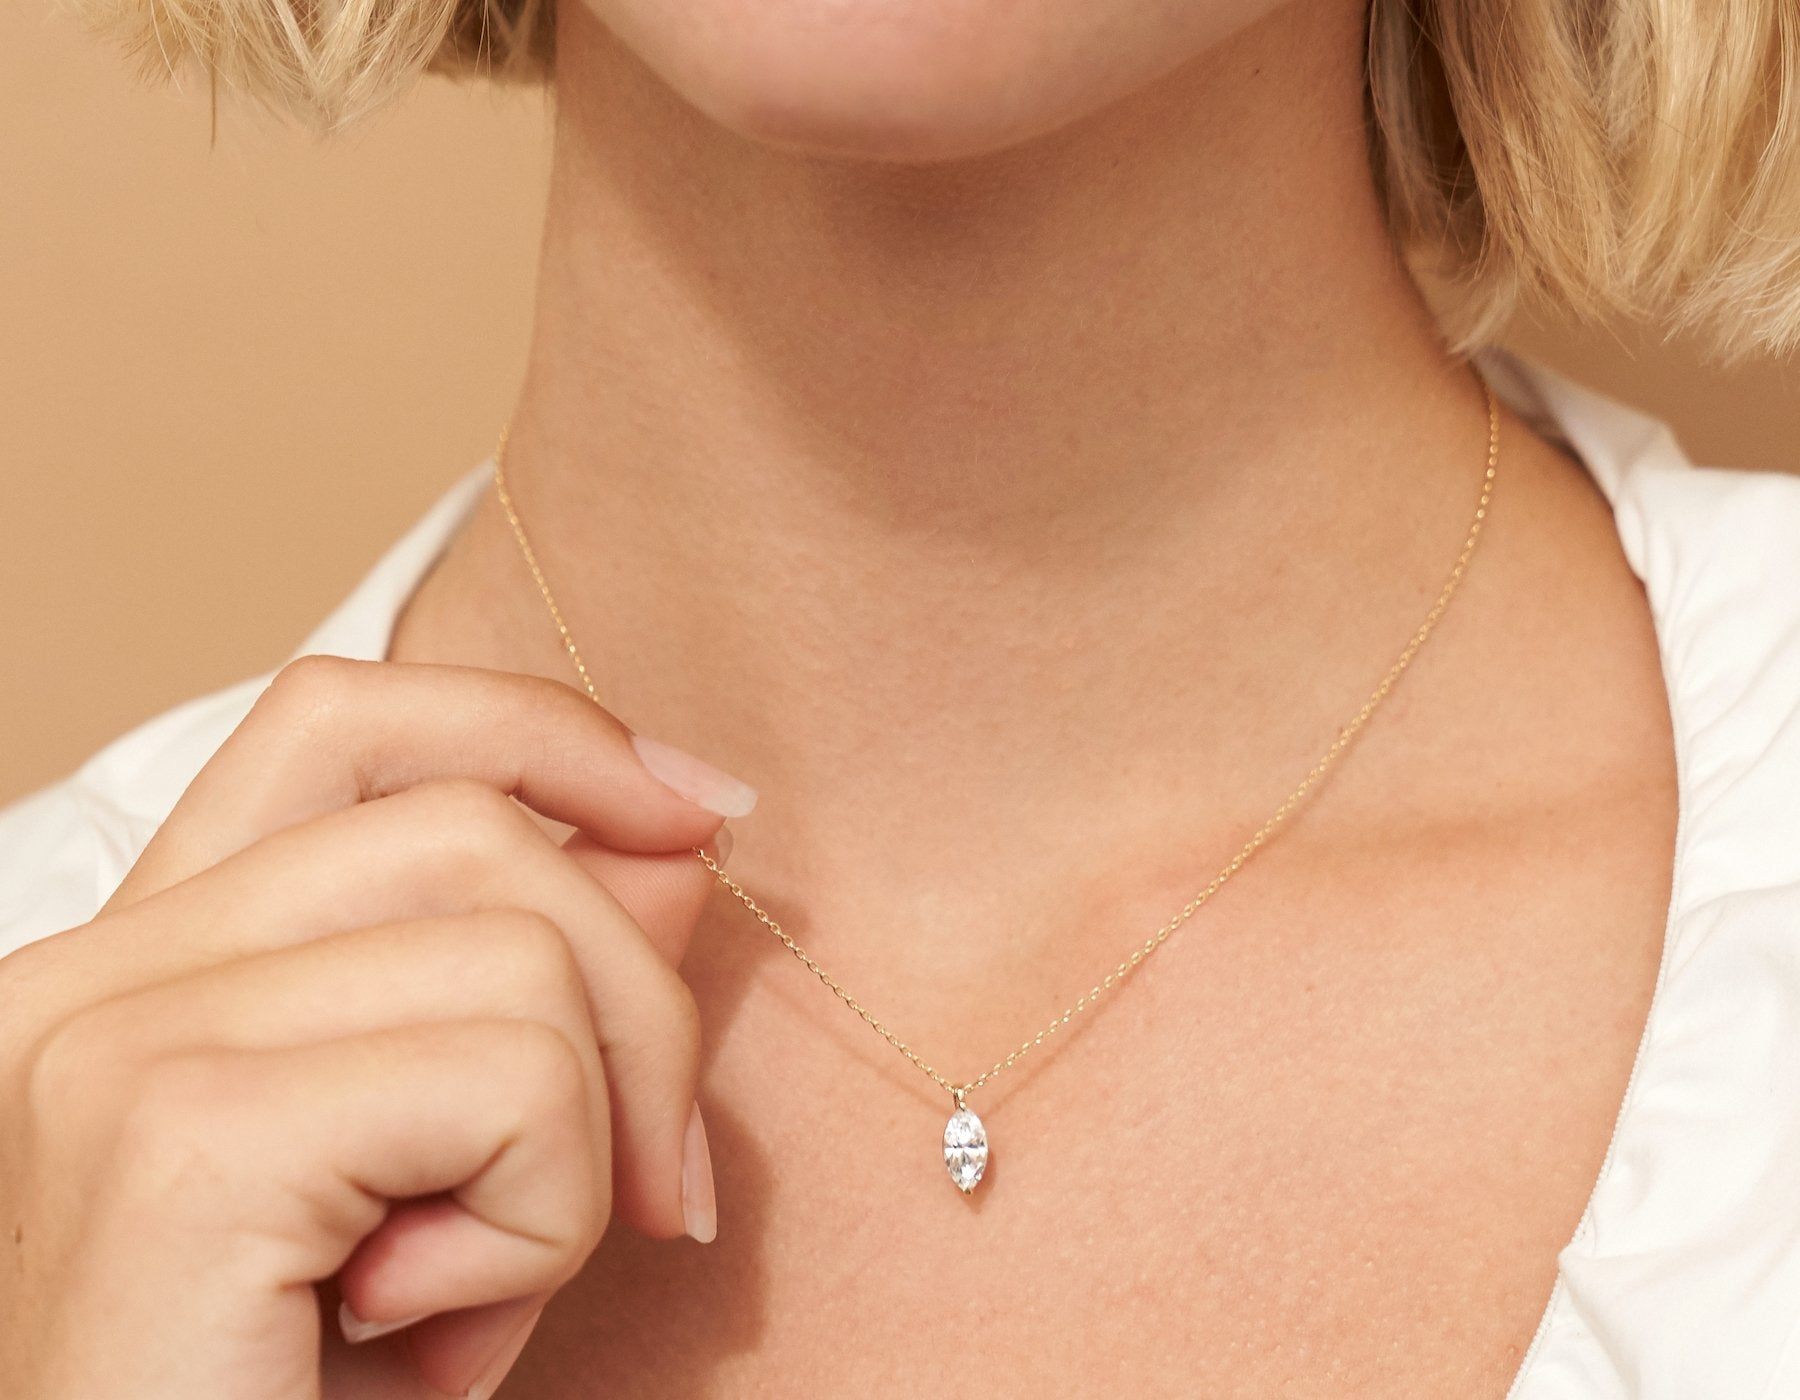 Model wearing Vrai 14K solid gold solitaire marquise diamond pendant necklace 1ct minimalist delicate, 14K Yellow Gold